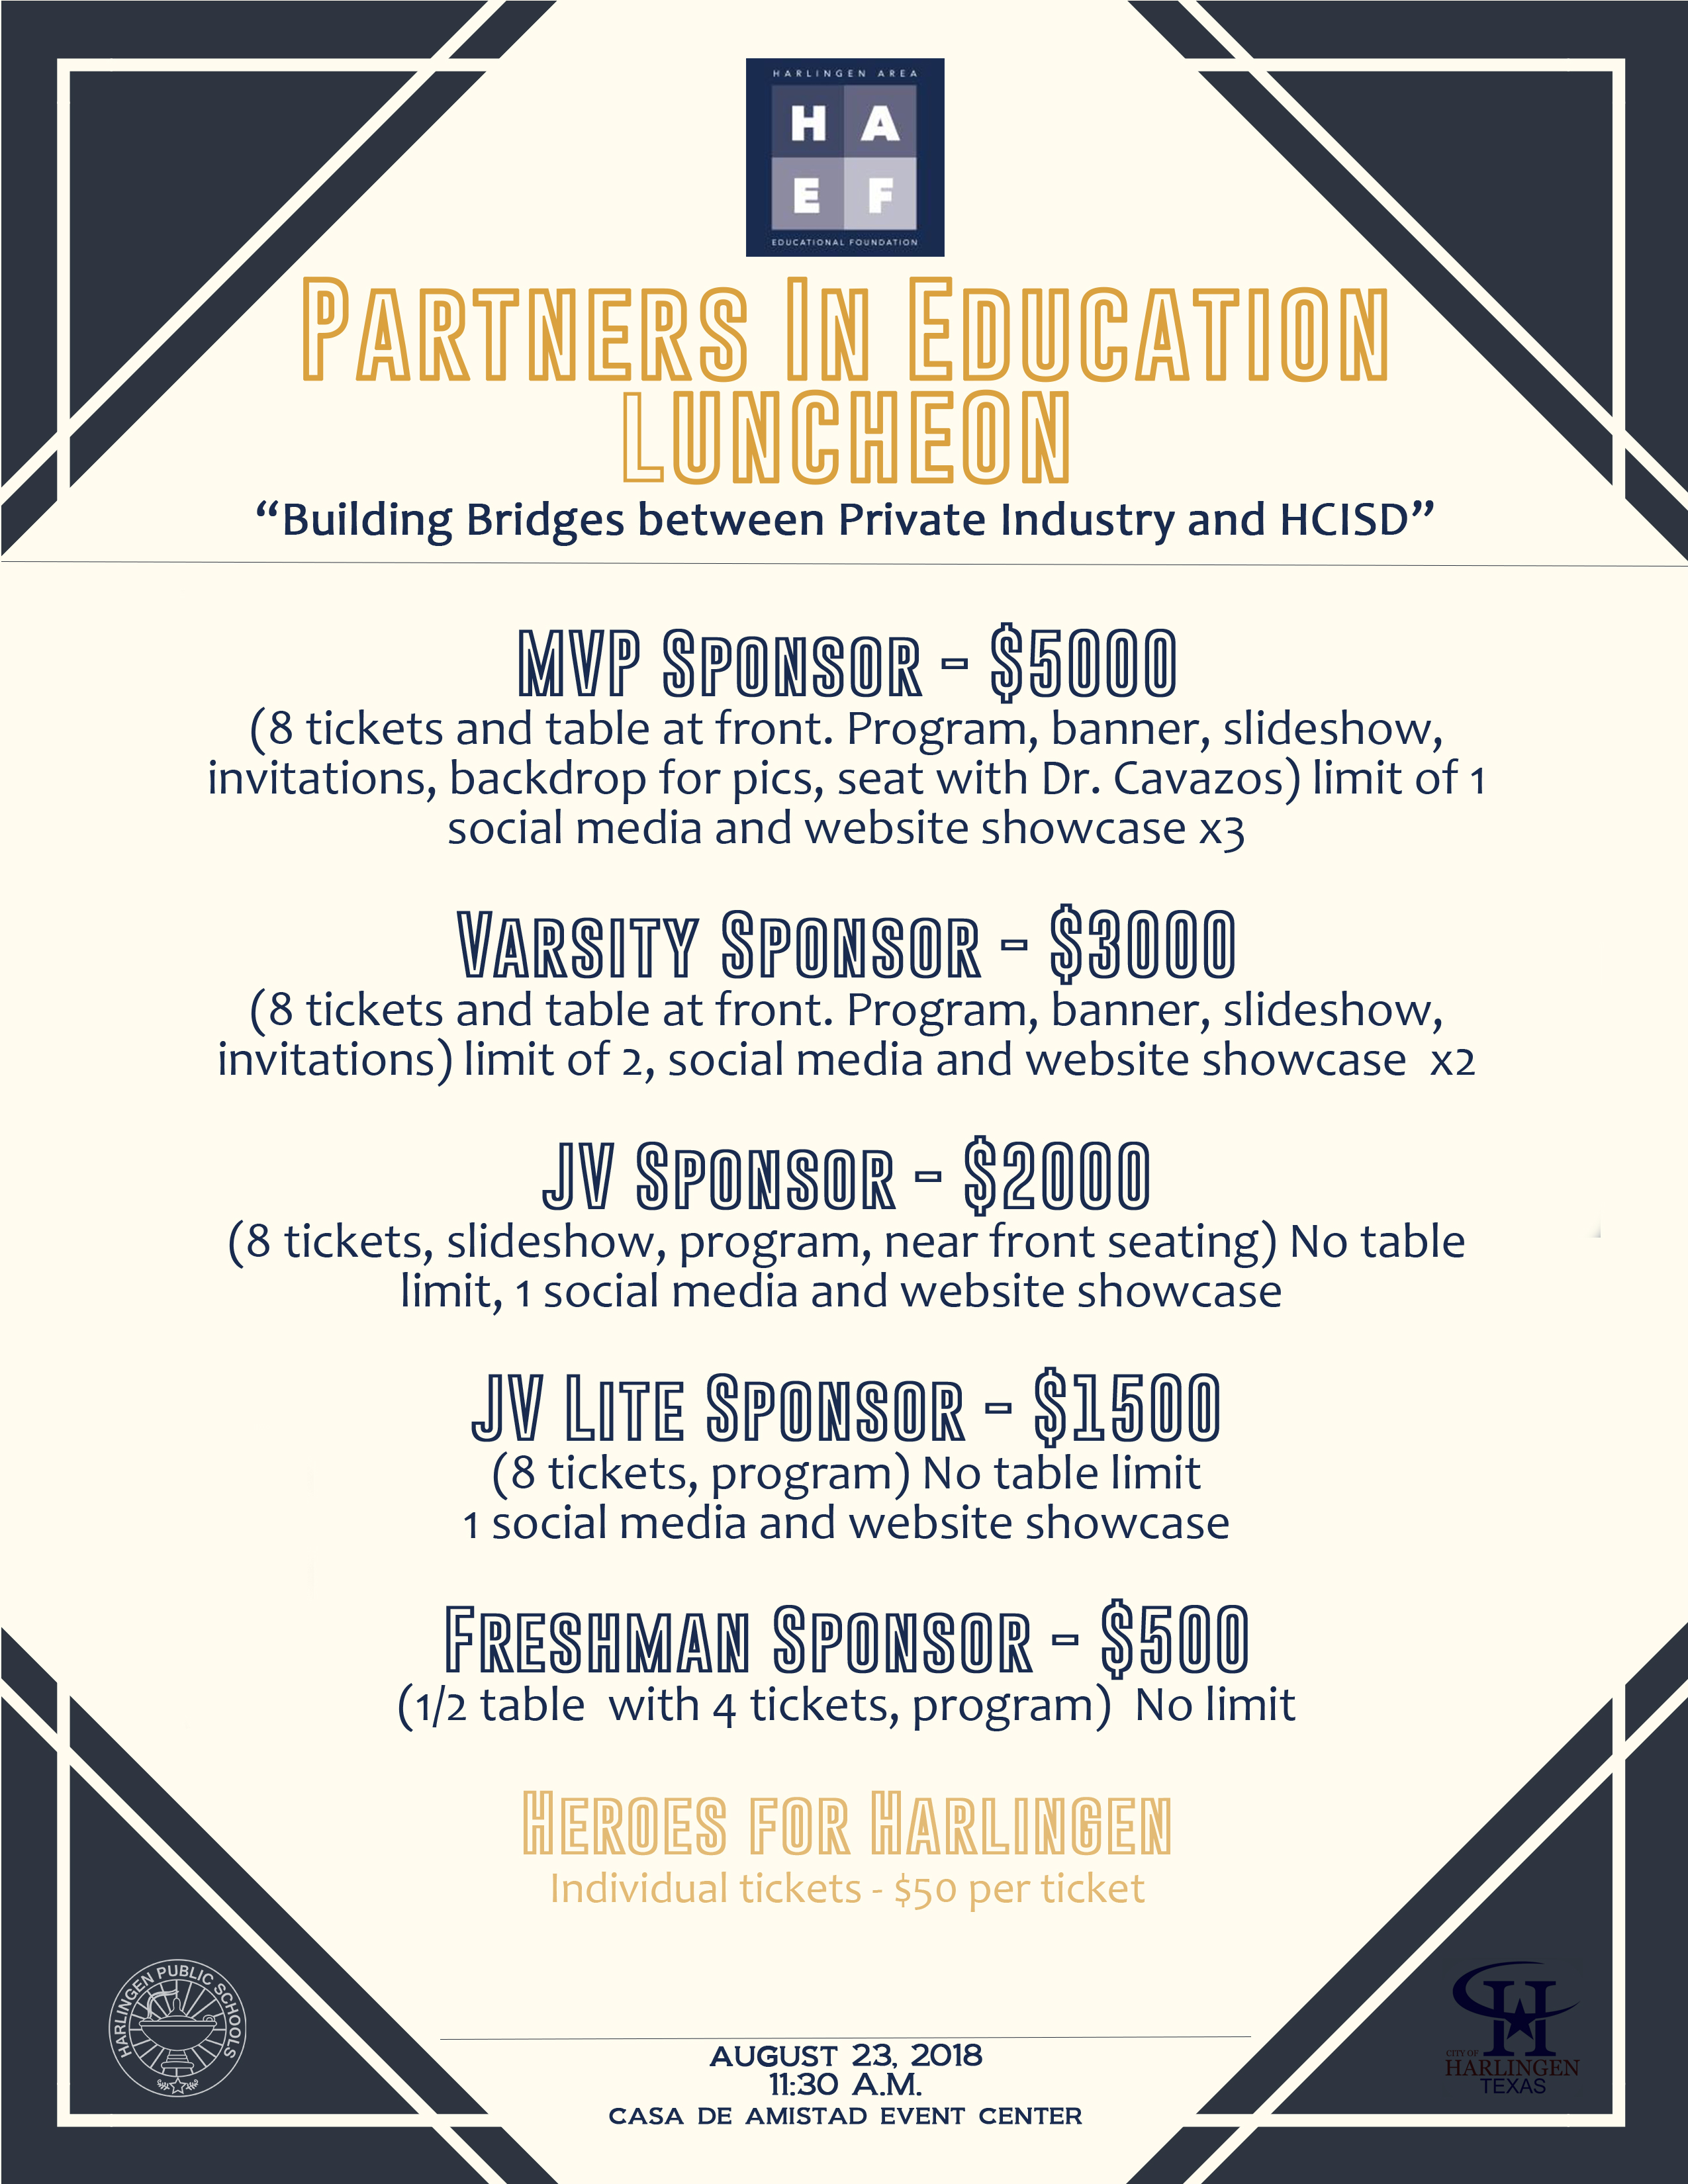 HAEF hosts Partners in Education Luncheon